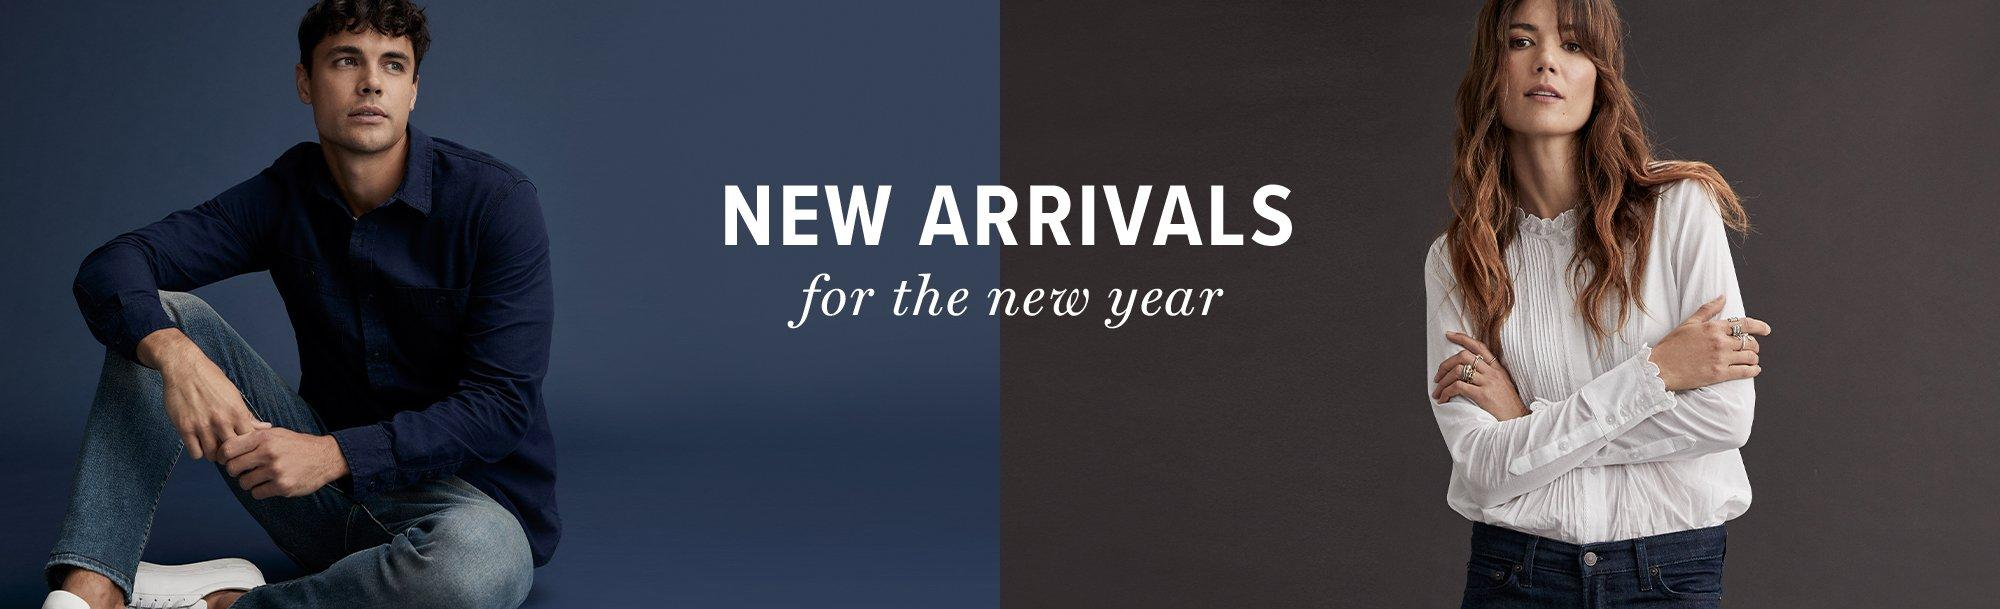 new arrivals for the new year